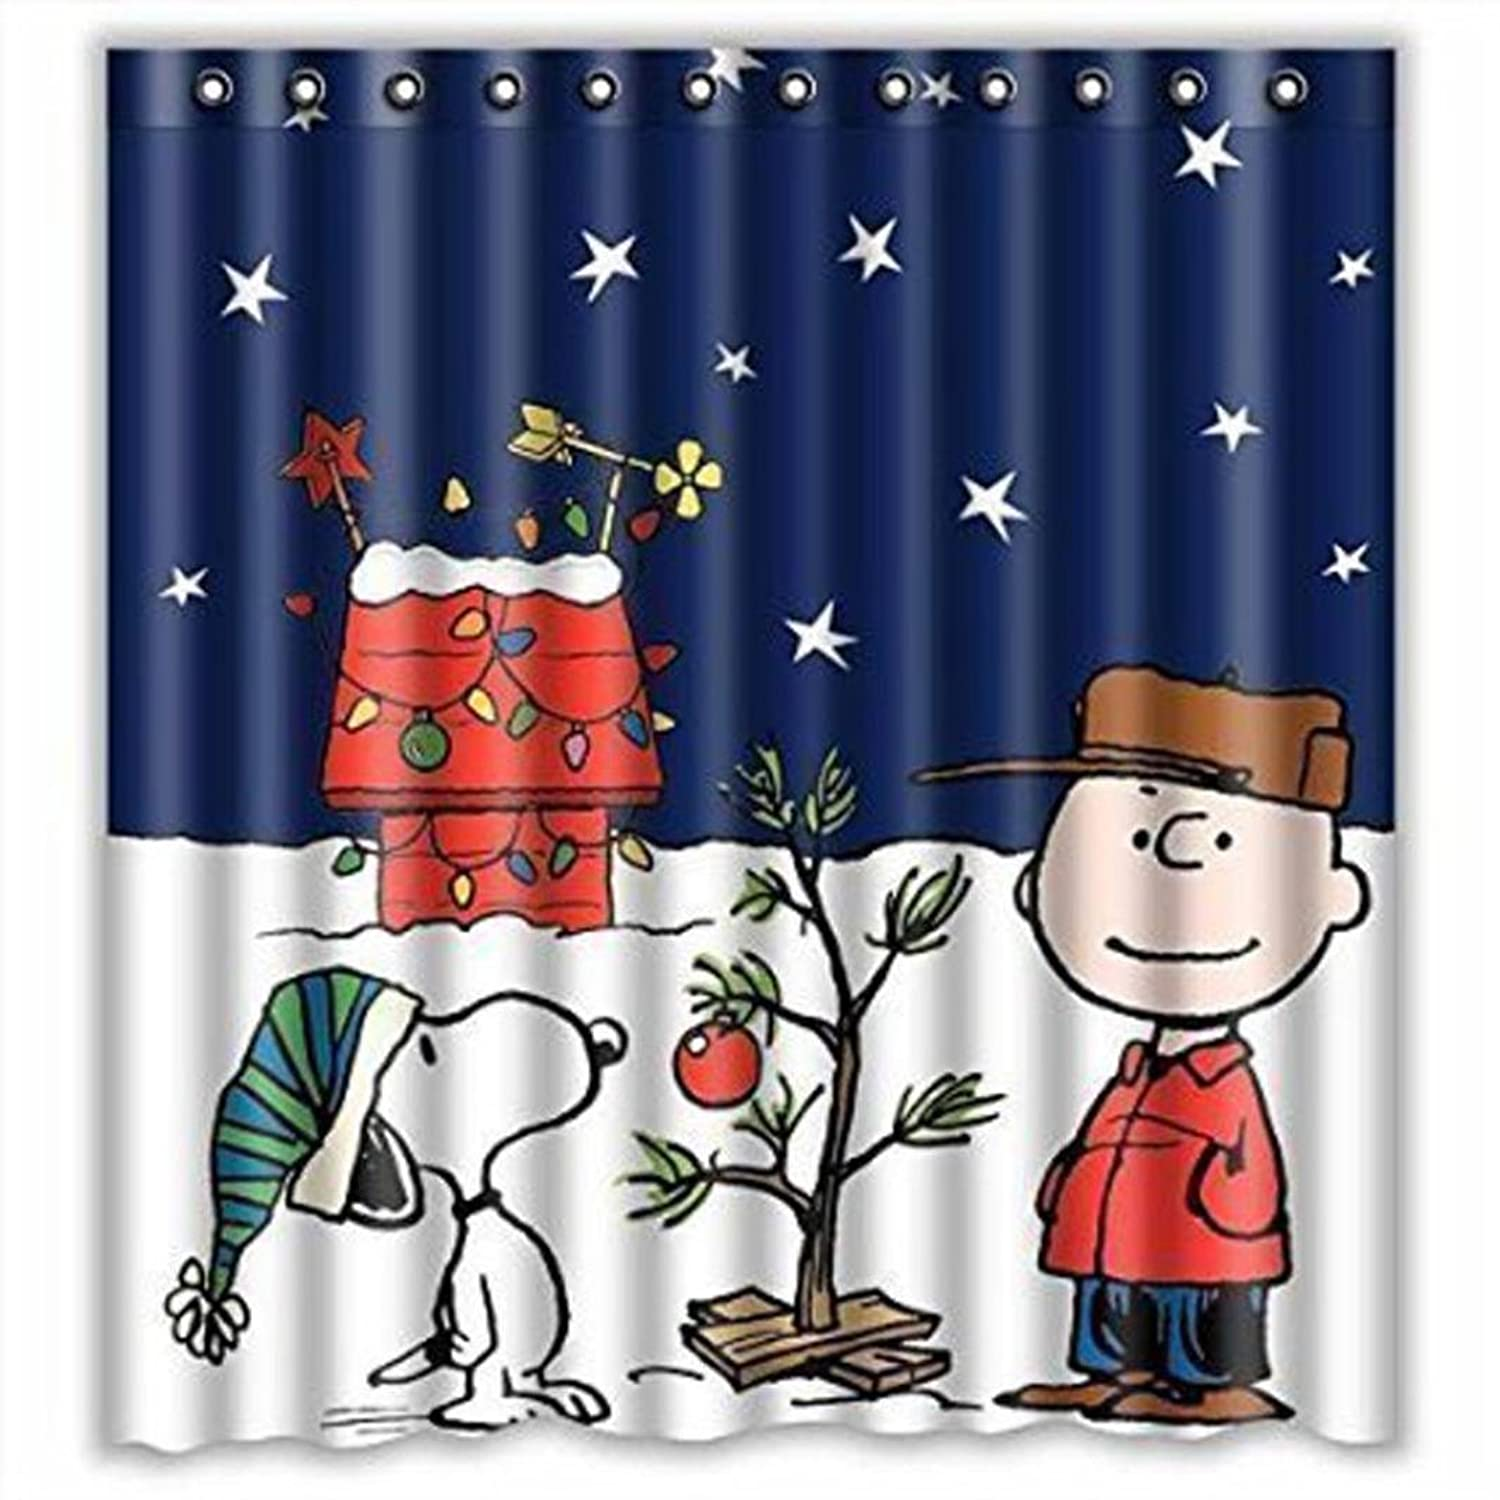 PHOTNO Custom Merry Christmas Fabric Waterproof Bathroom Shower Curtain 66 x 72